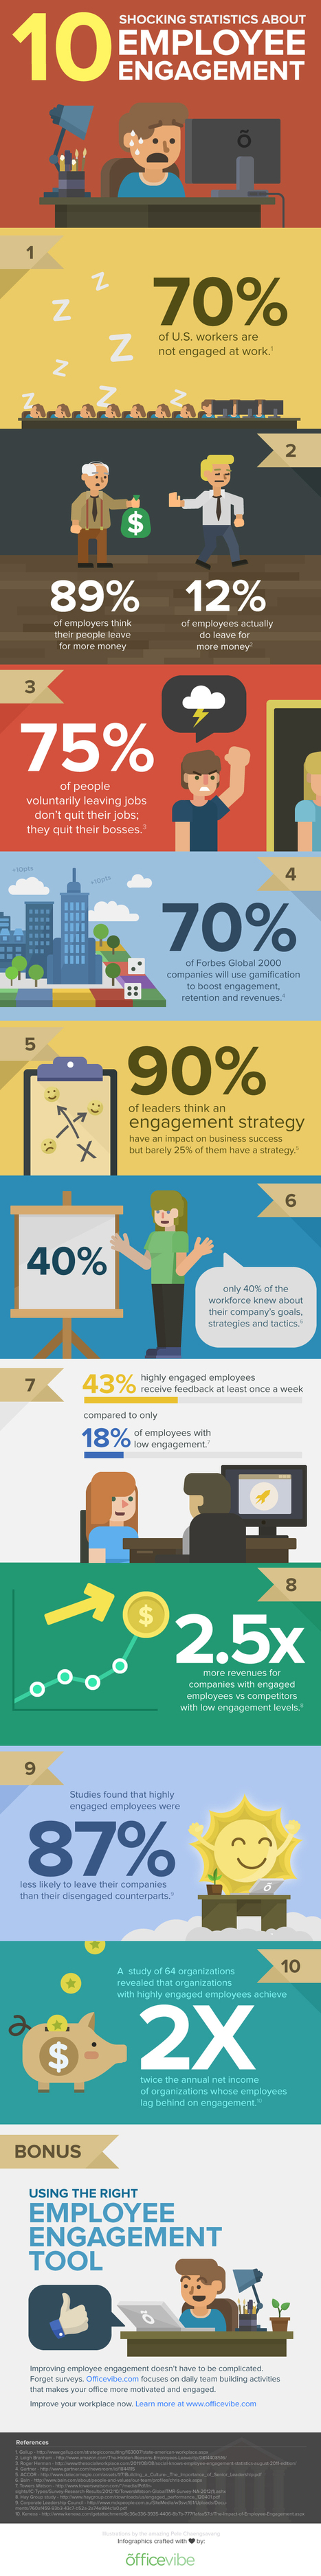 Employee Engagement Infographic  - Jaluch | Business Education | Scoop.it